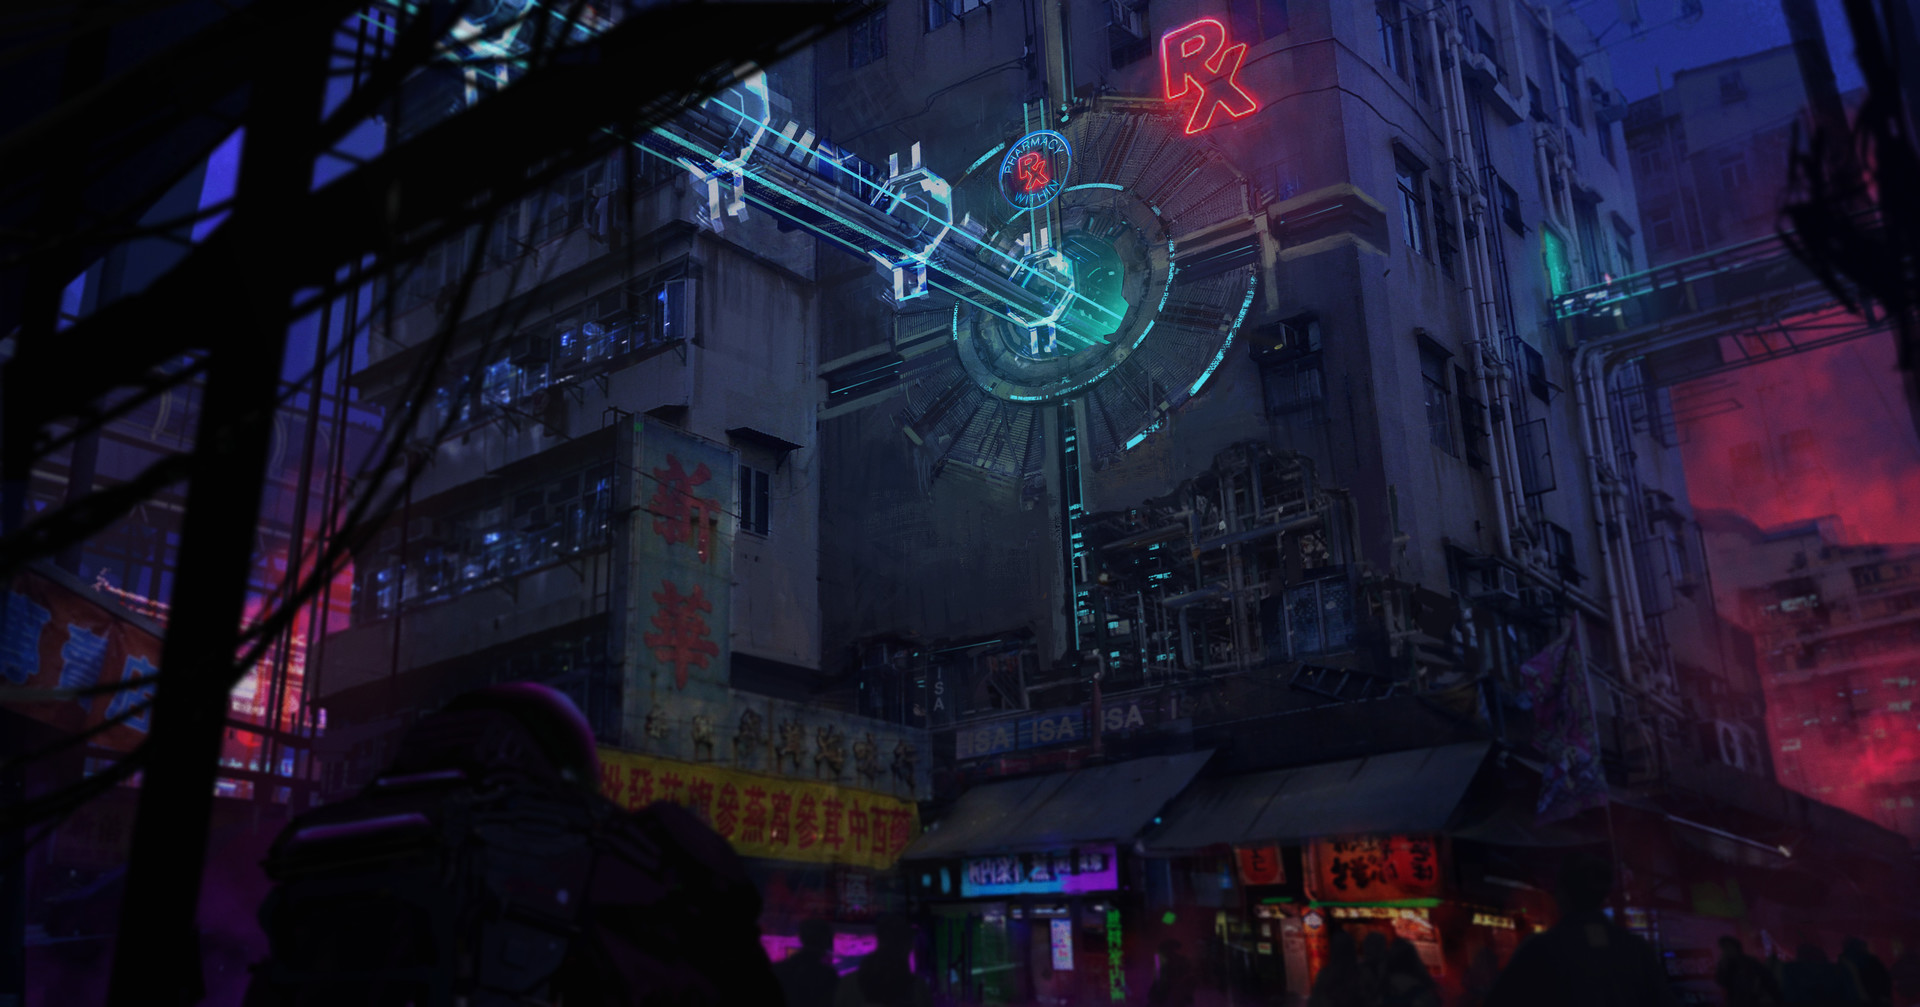 Duncan halleck cyberpunk3 post